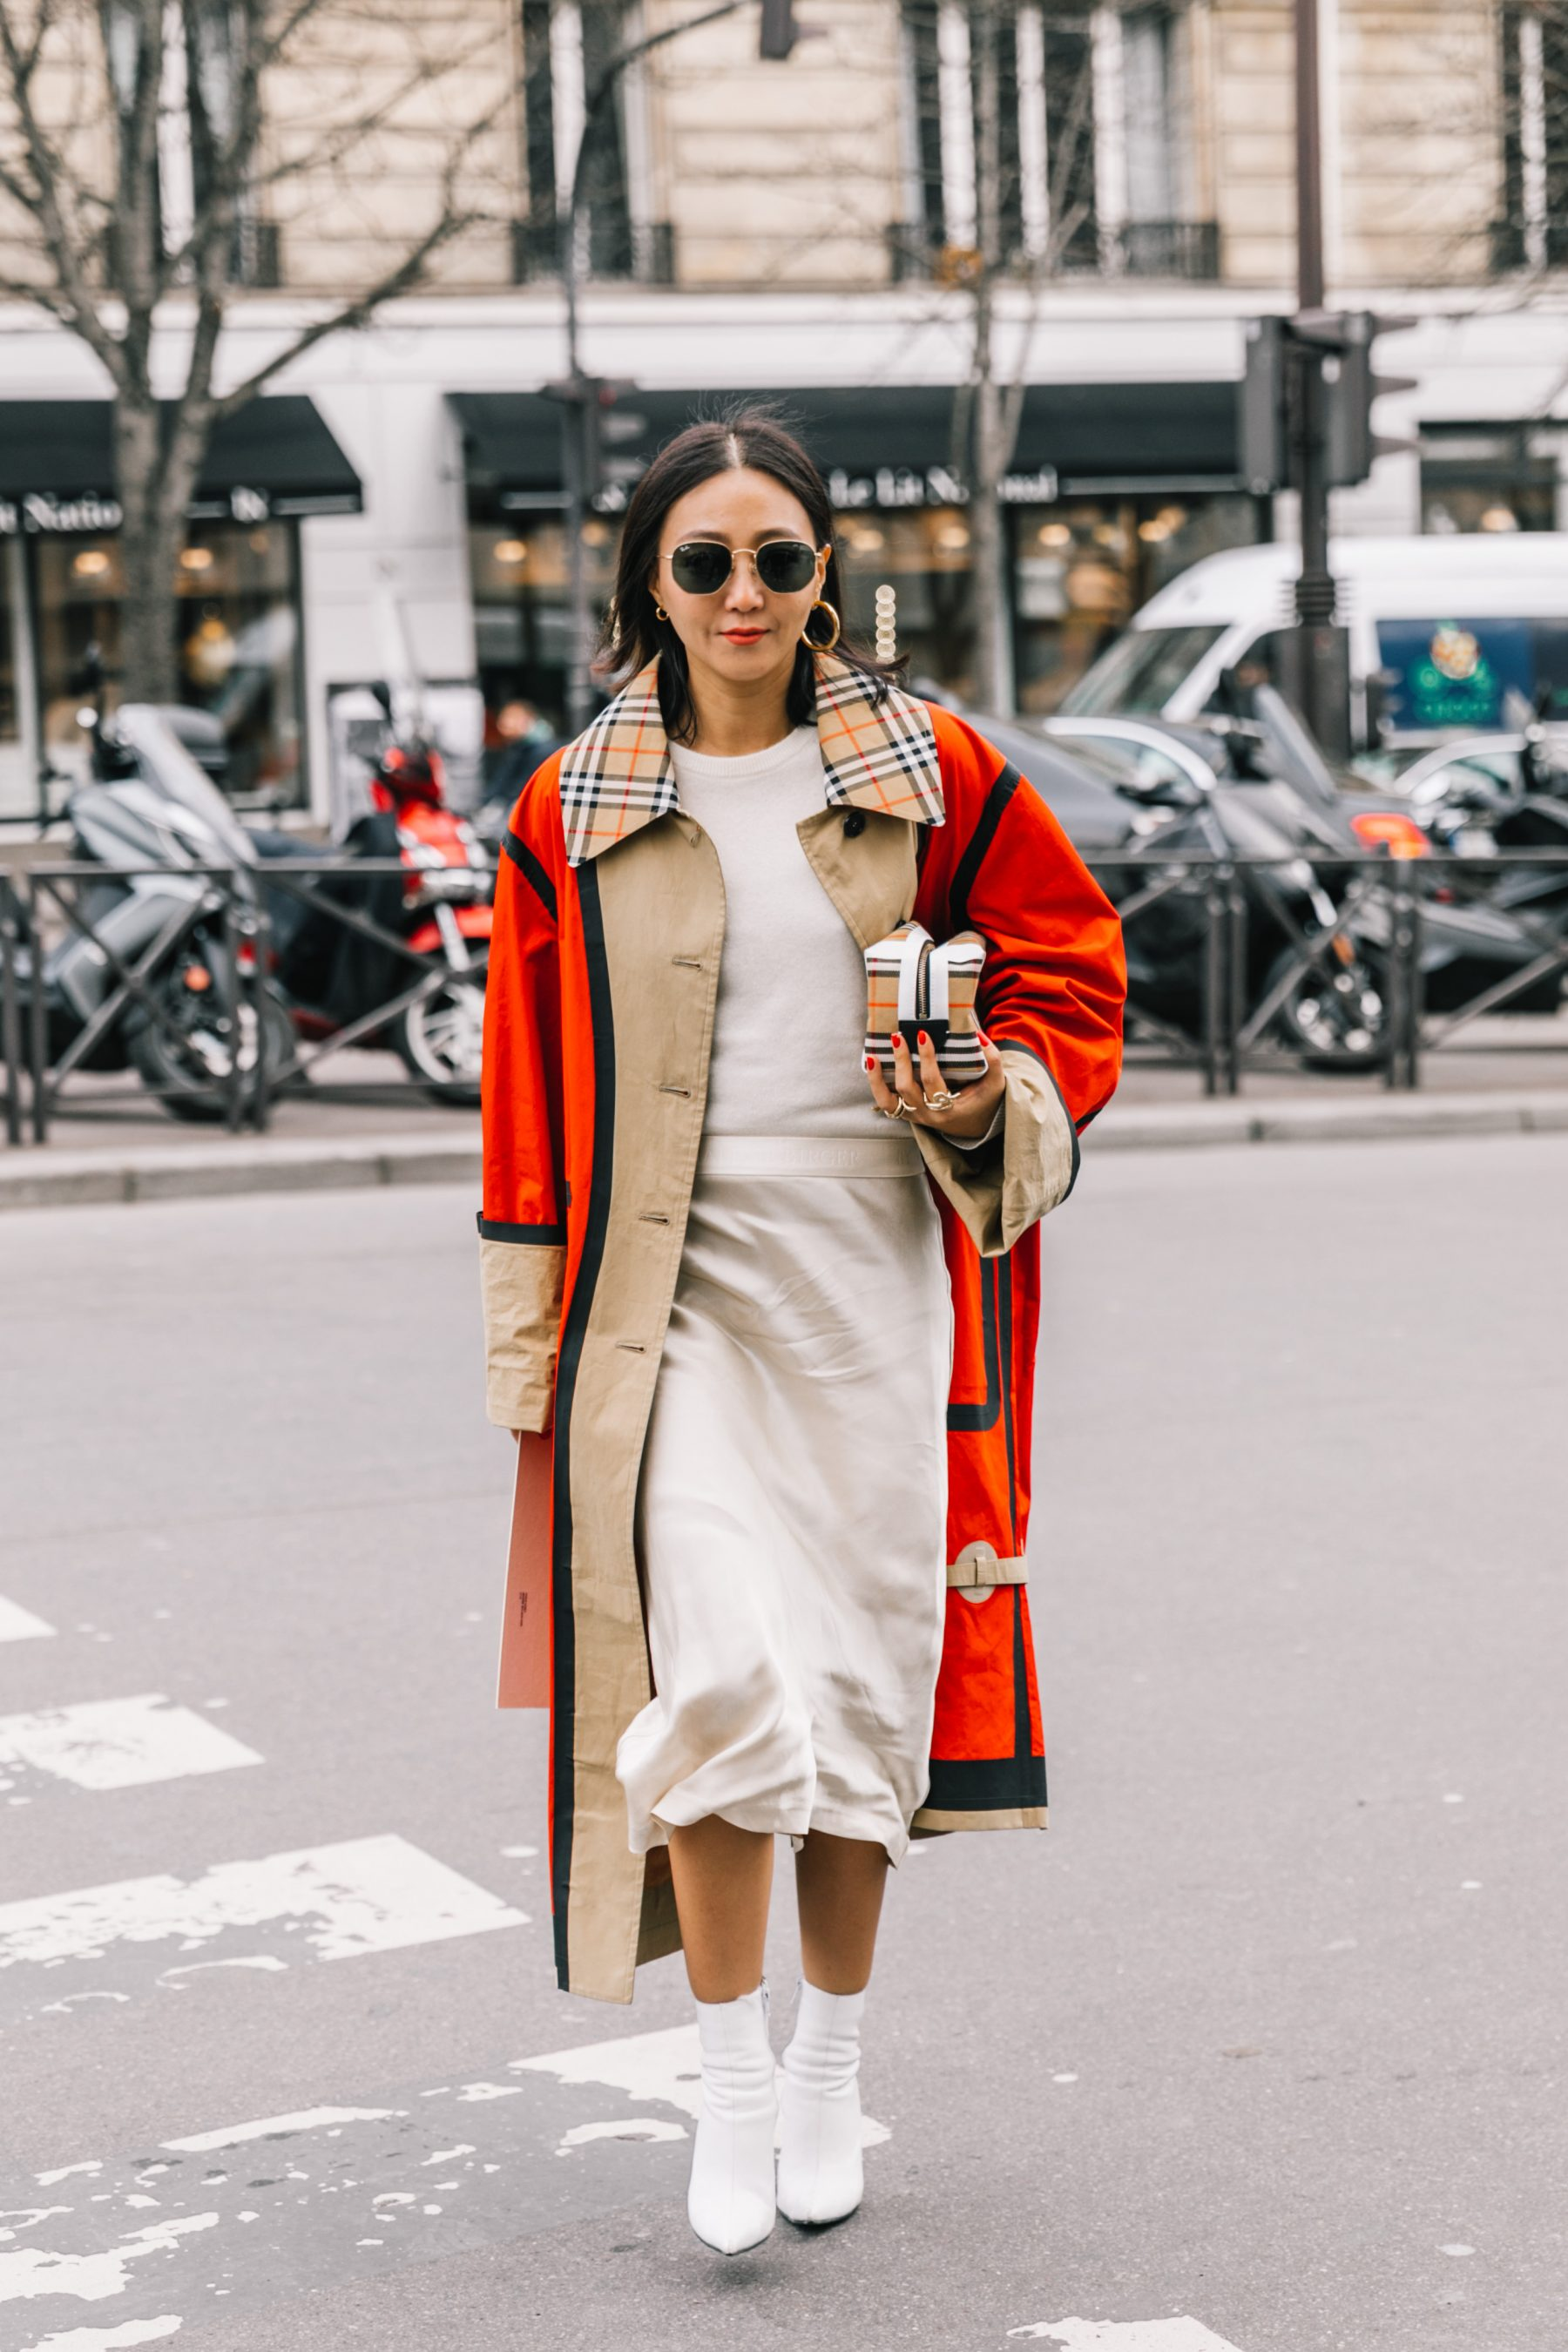 19 Stylish Fall Outfits Worth Copying: PARIS FALL 18/19 STREET STYLE III